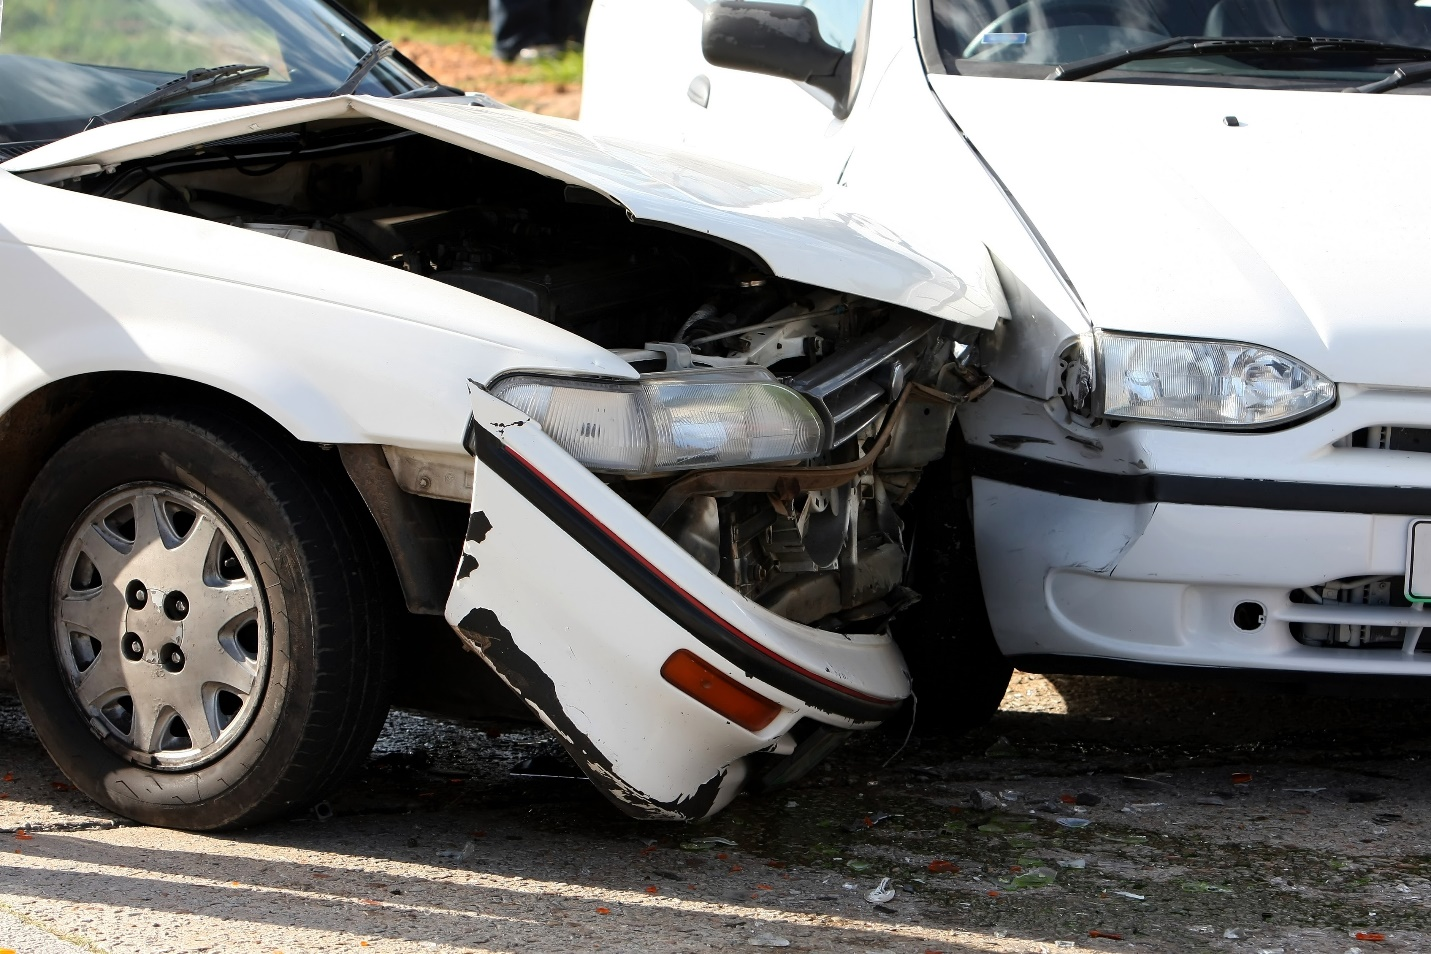 dallas car accident lawyers 2 - Who is at Fault in a Car Accident While Changing Lanes in Texas?